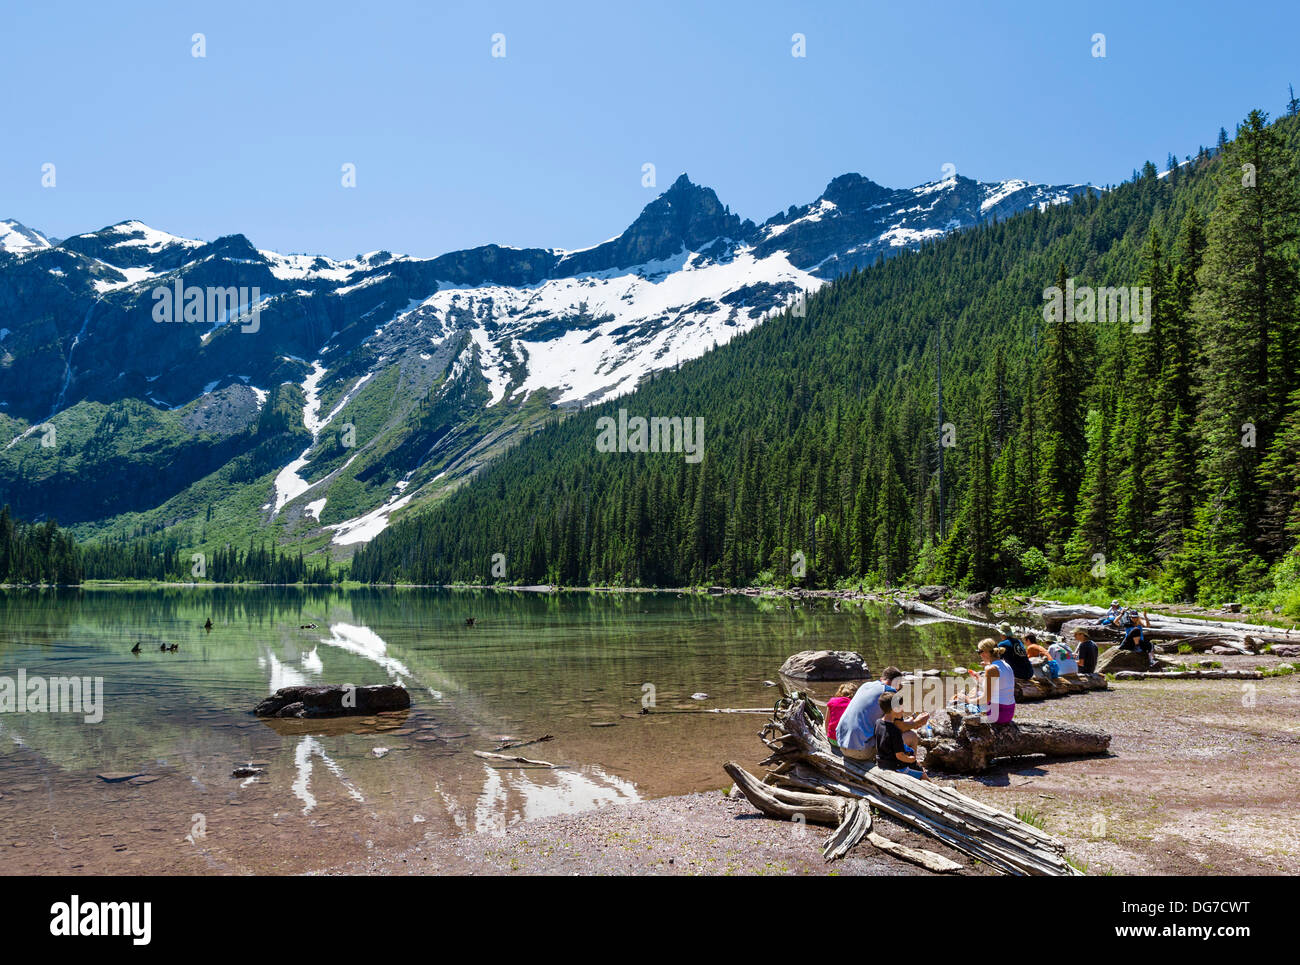 Walkers having a picnic on the shores of Avalanche Lake, Avalanche Lake Trail, Glacier National Park, Montana, USA - Stock Image